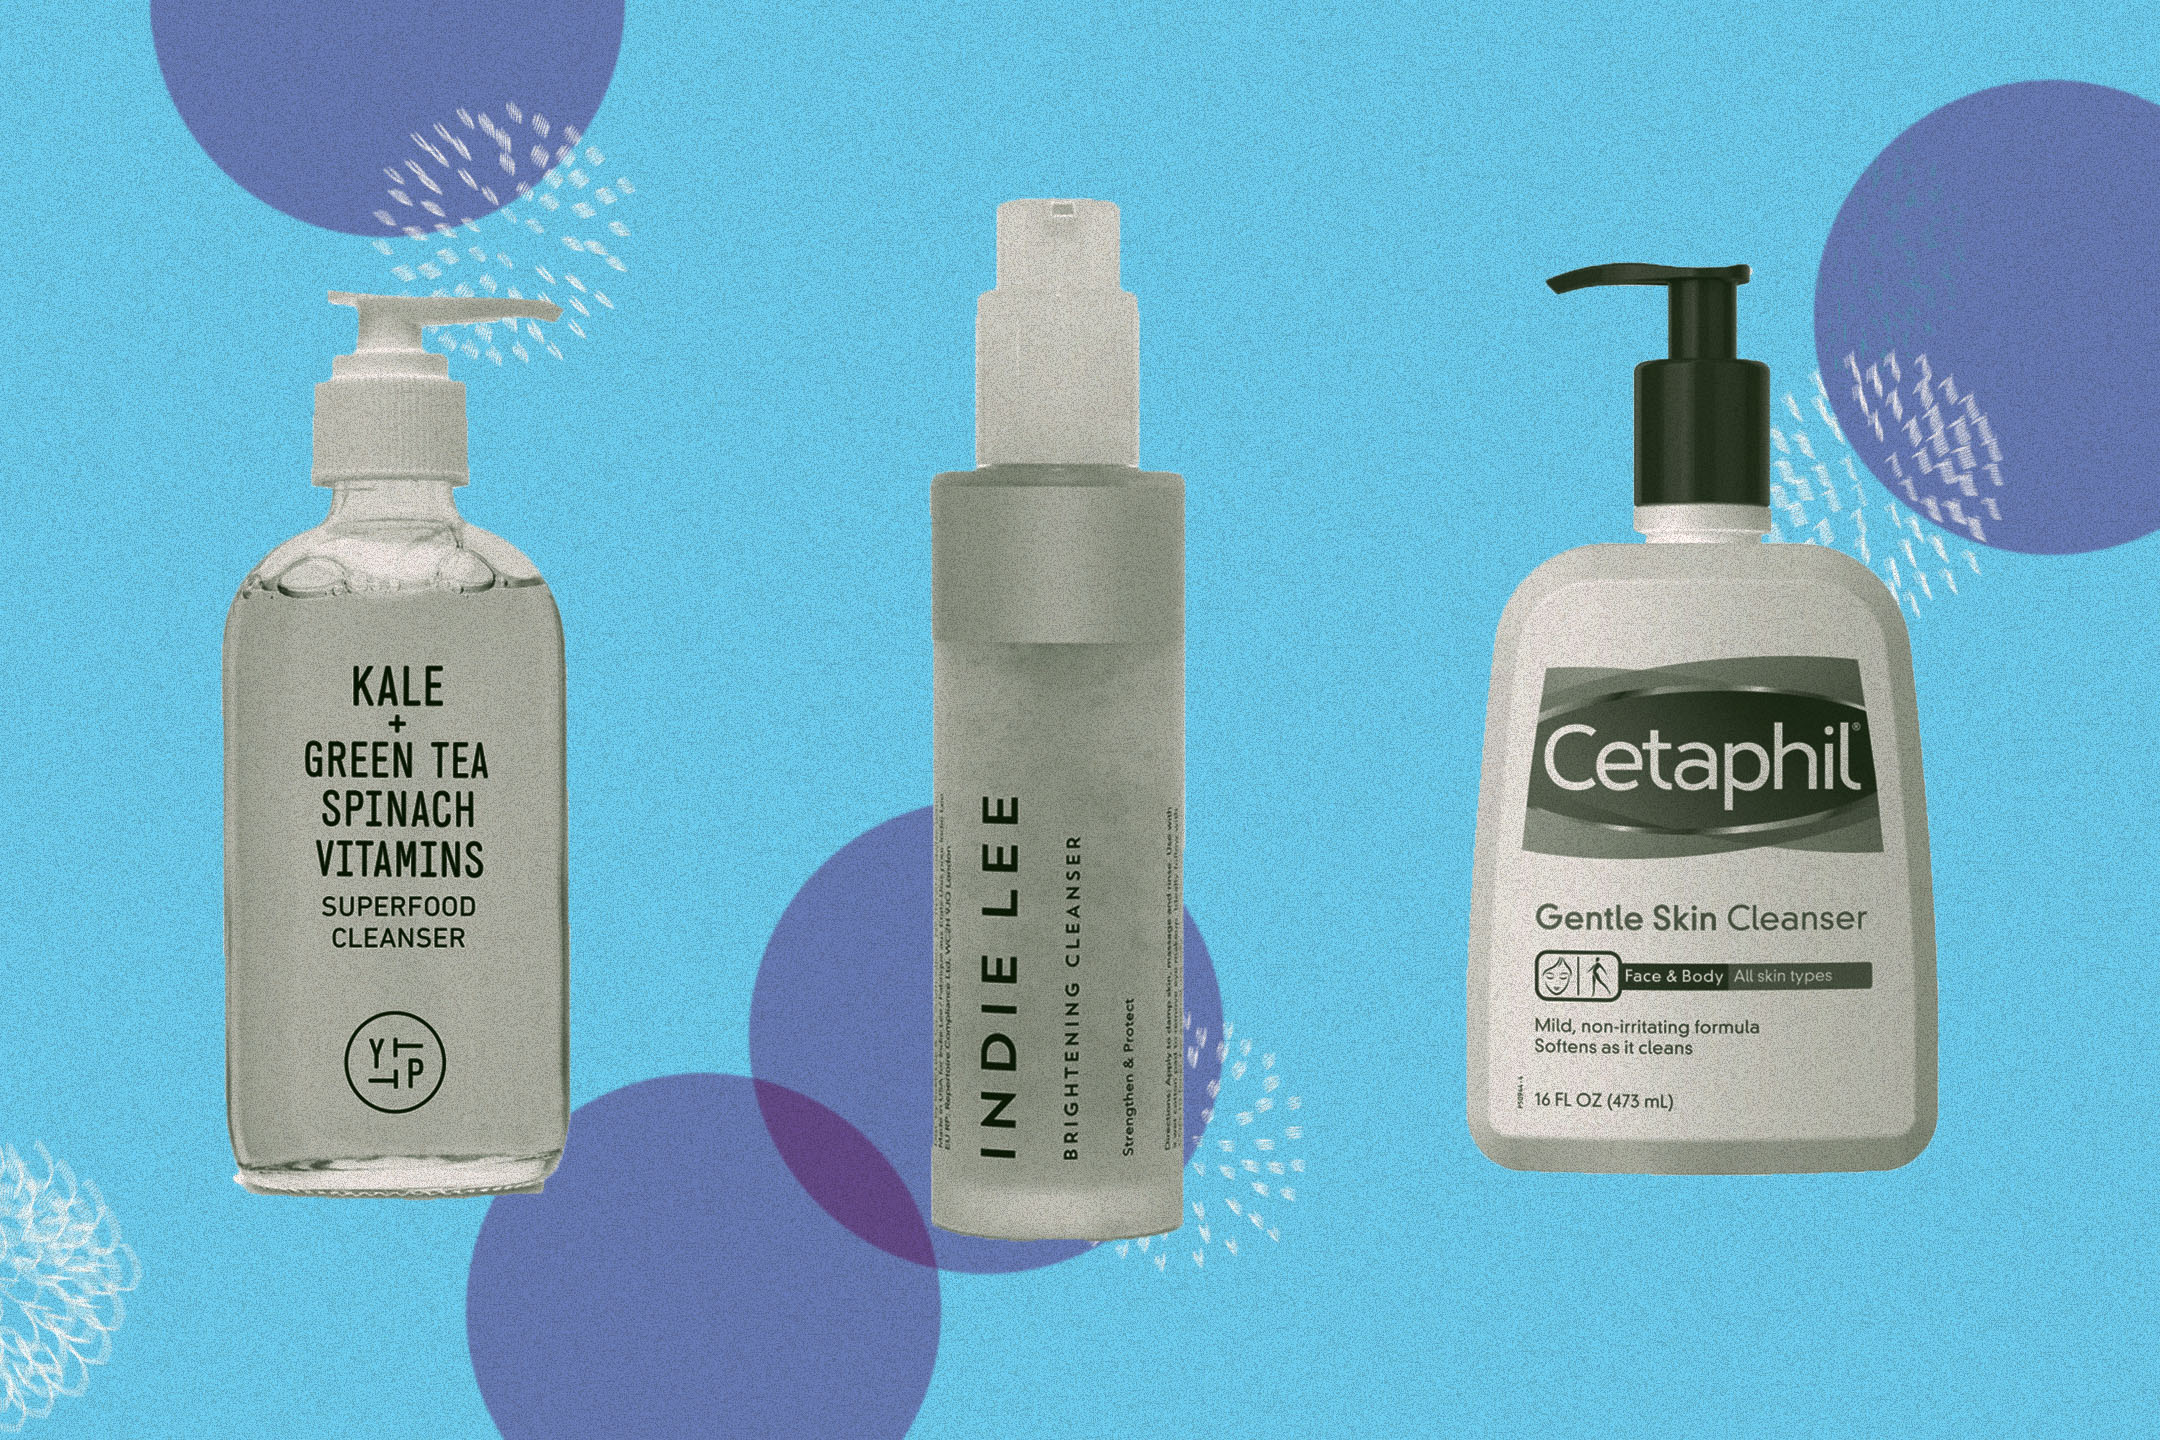 Youth To The People, Indie Lee and Cetaphil are among the top cleansers.